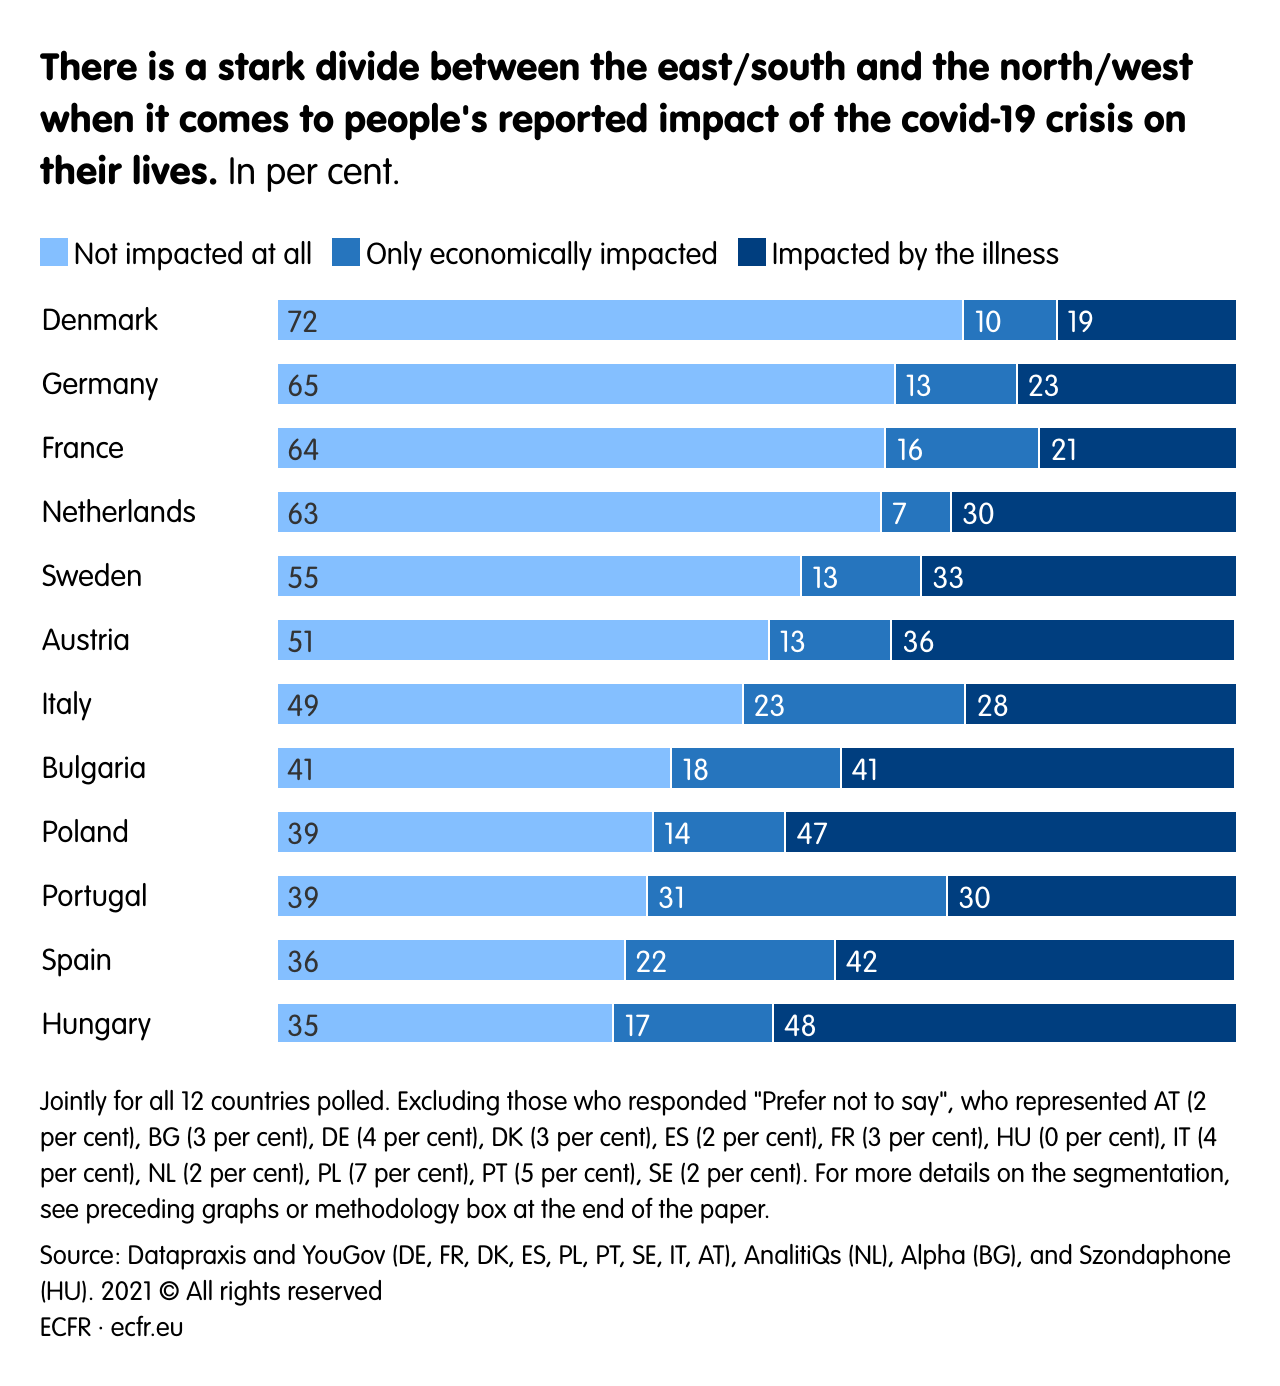 There is a stark divide between the east/south and the north/west when it comes to people's reported impact of the covid-19 crisis on their lives.